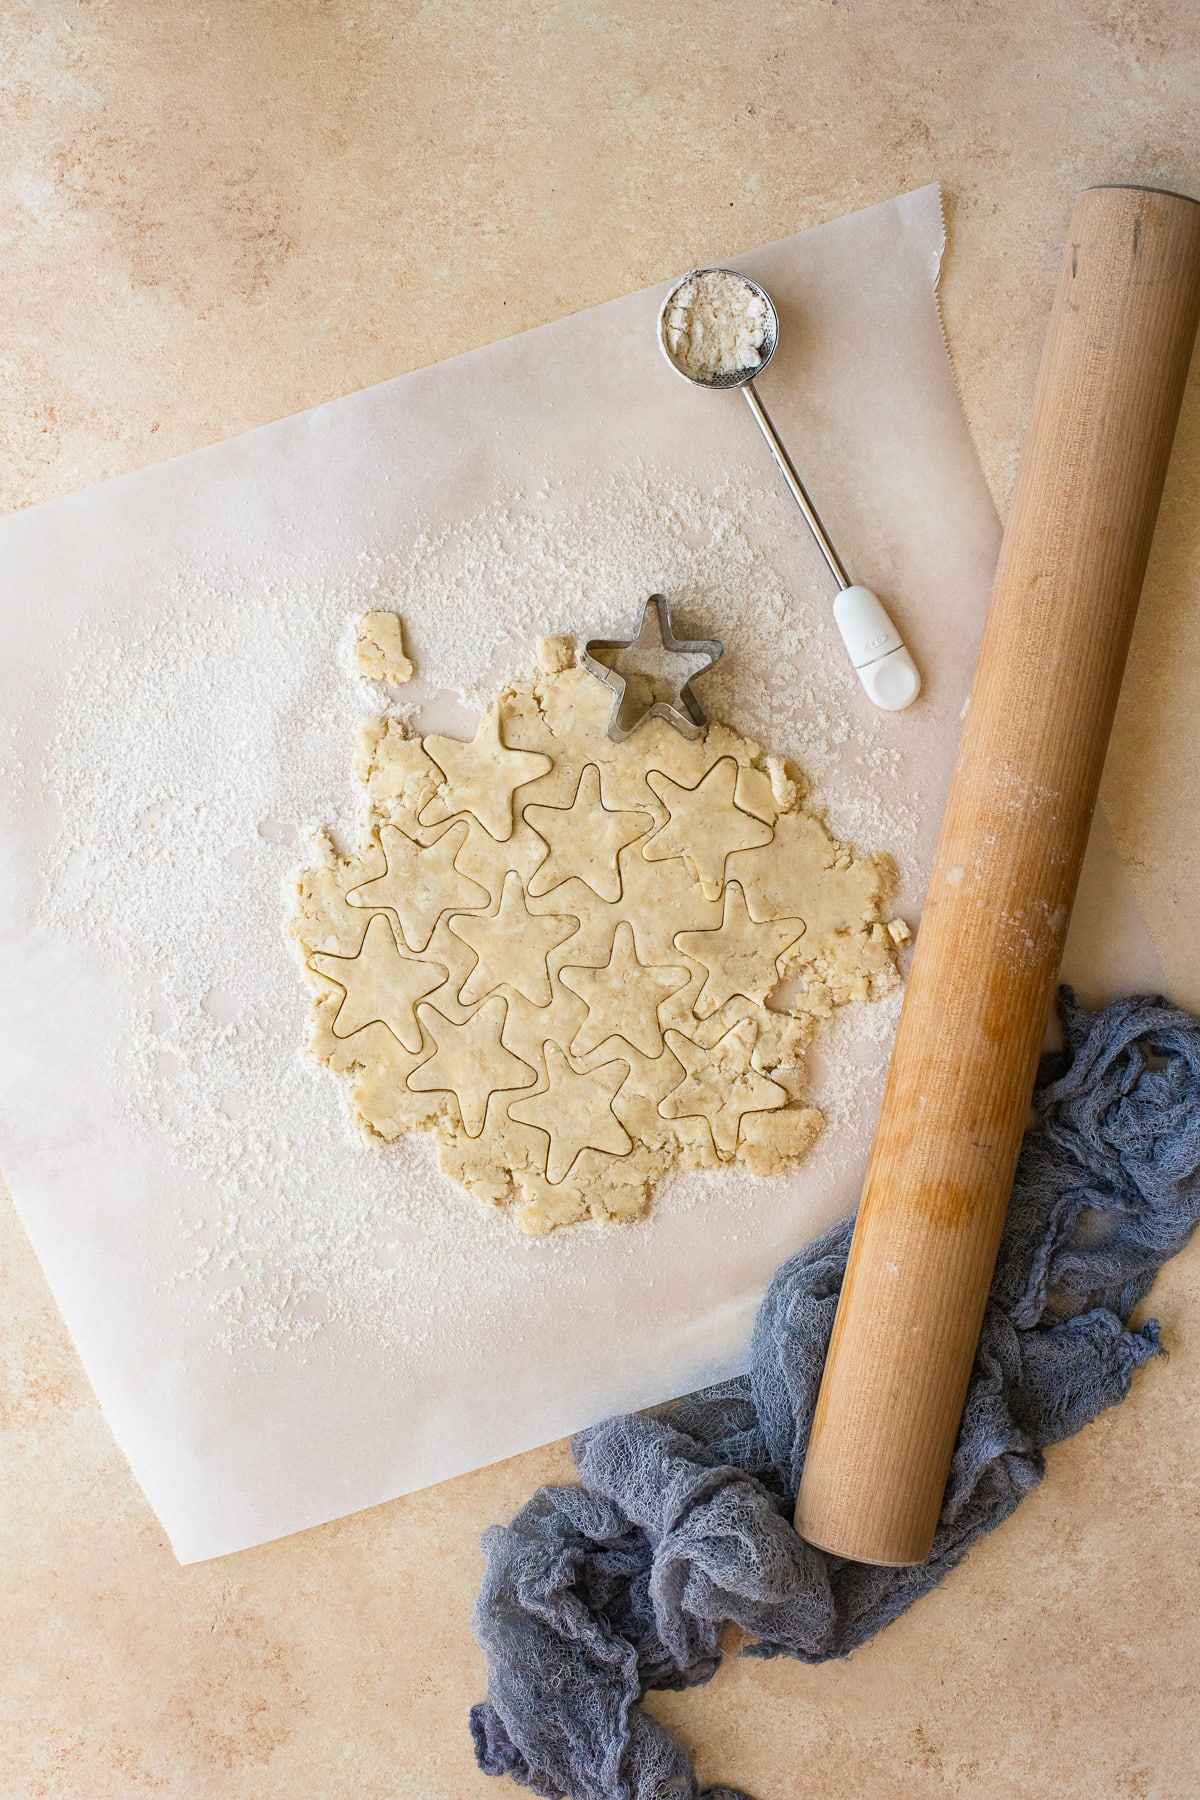 Pie crust dough being rolled out and cut into stars.